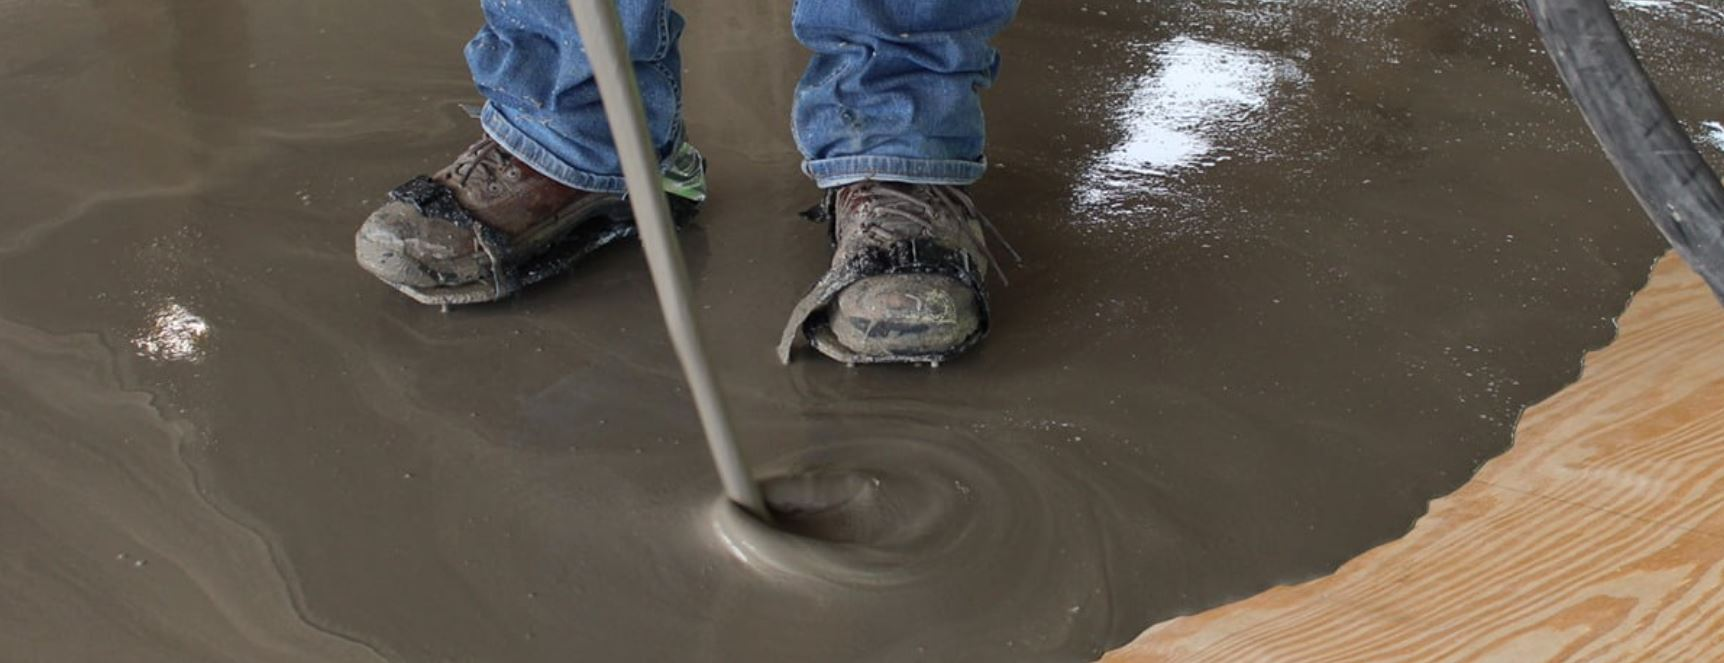 Floor underlayments and self leveling underlayments by LATICRETE